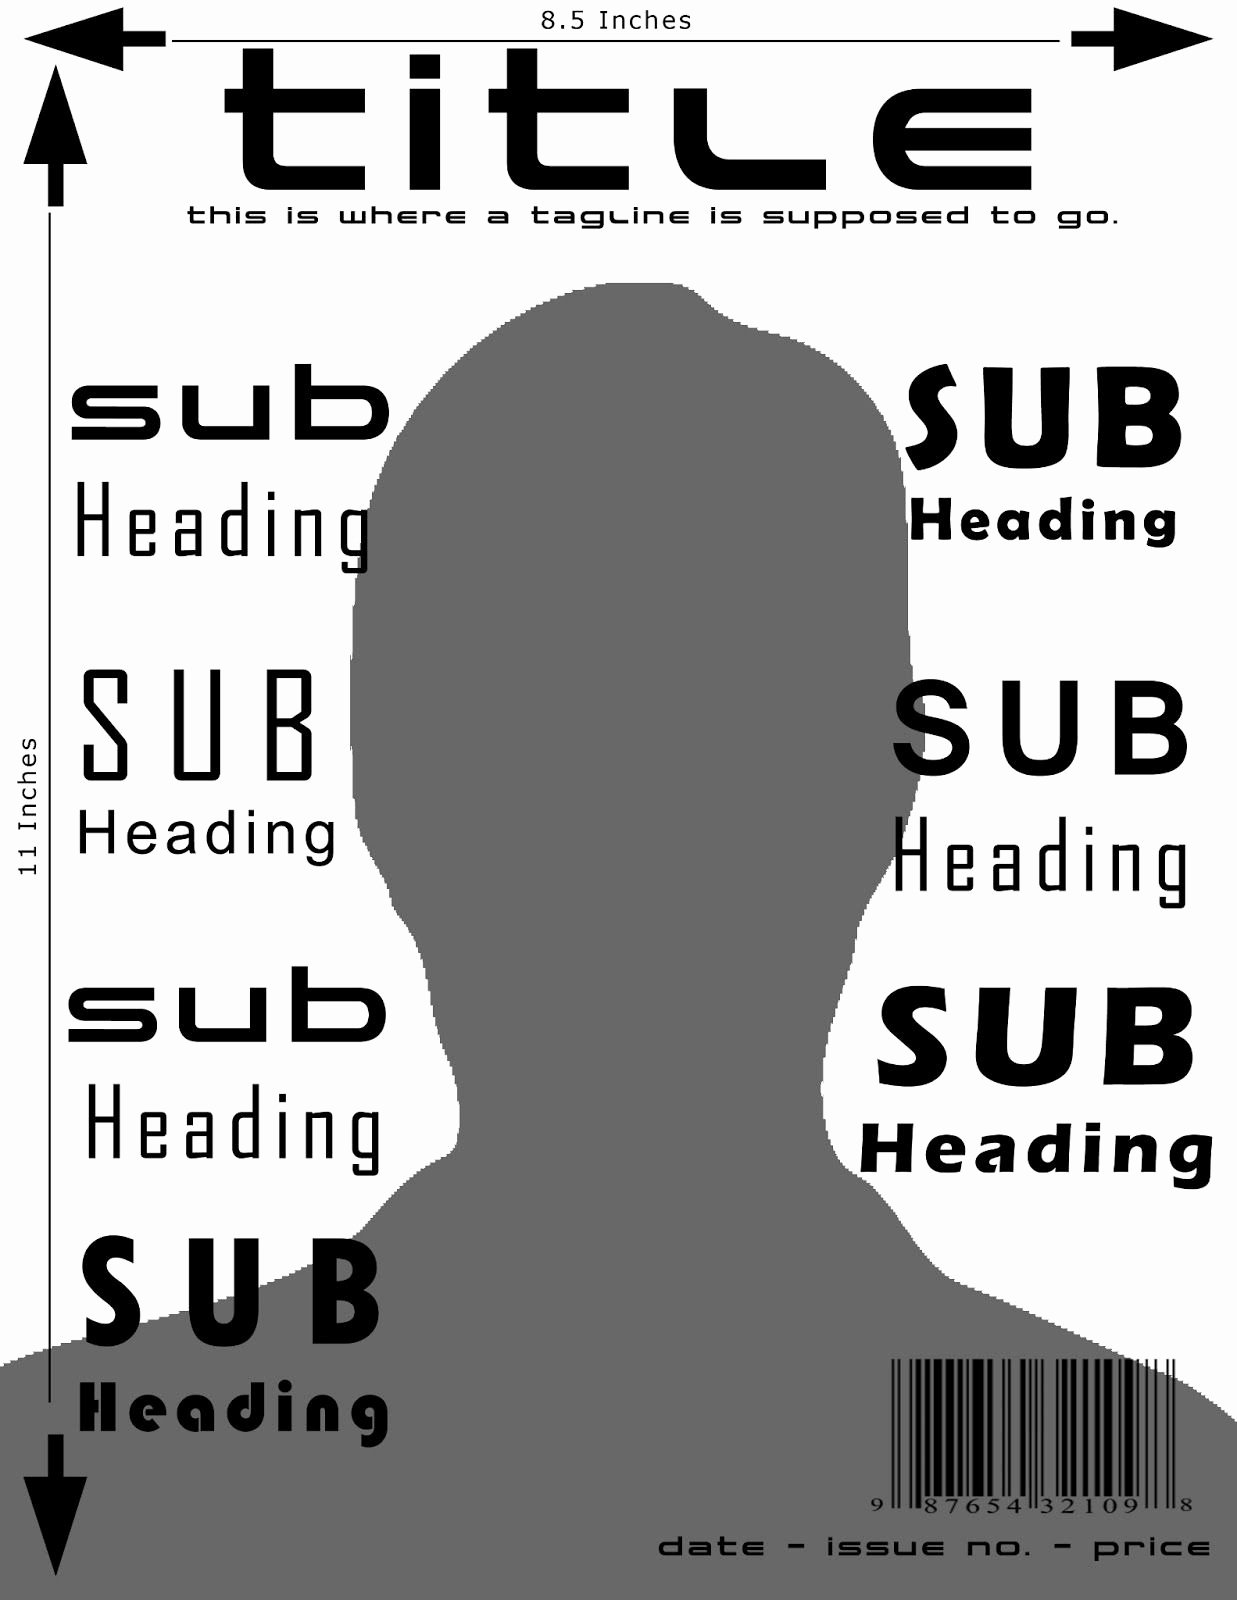 Magazine Cover Template and Dimensions